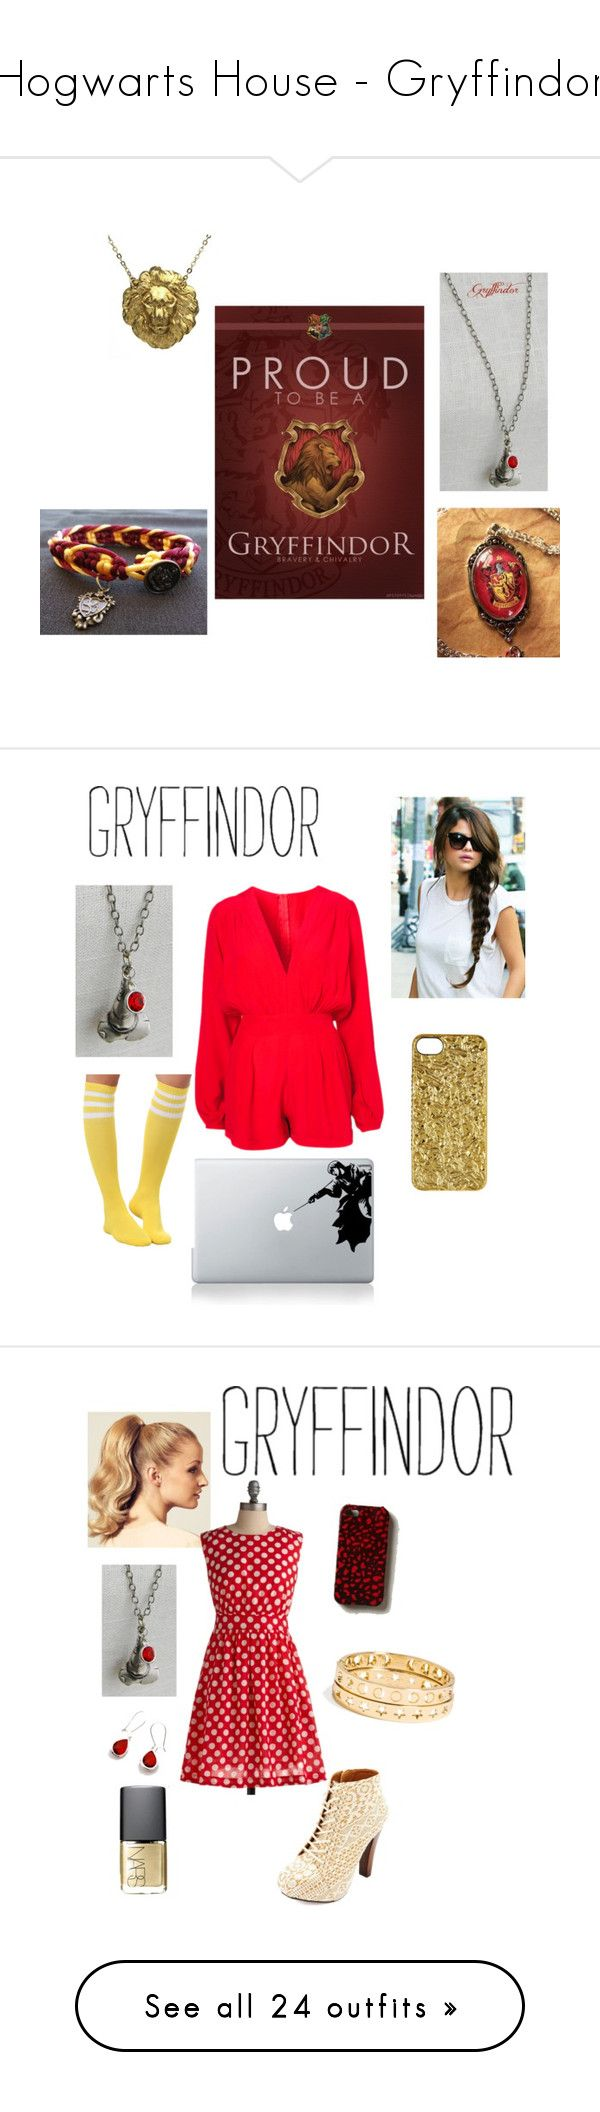 """""""Hogwarts House - Gryffindor"""" by briony-jae ❤ liked on Polyvore featuring harry potter, gryffindor, hogwarts, fillers, hp, backgrounds, quotes, text, phrase and saying"""